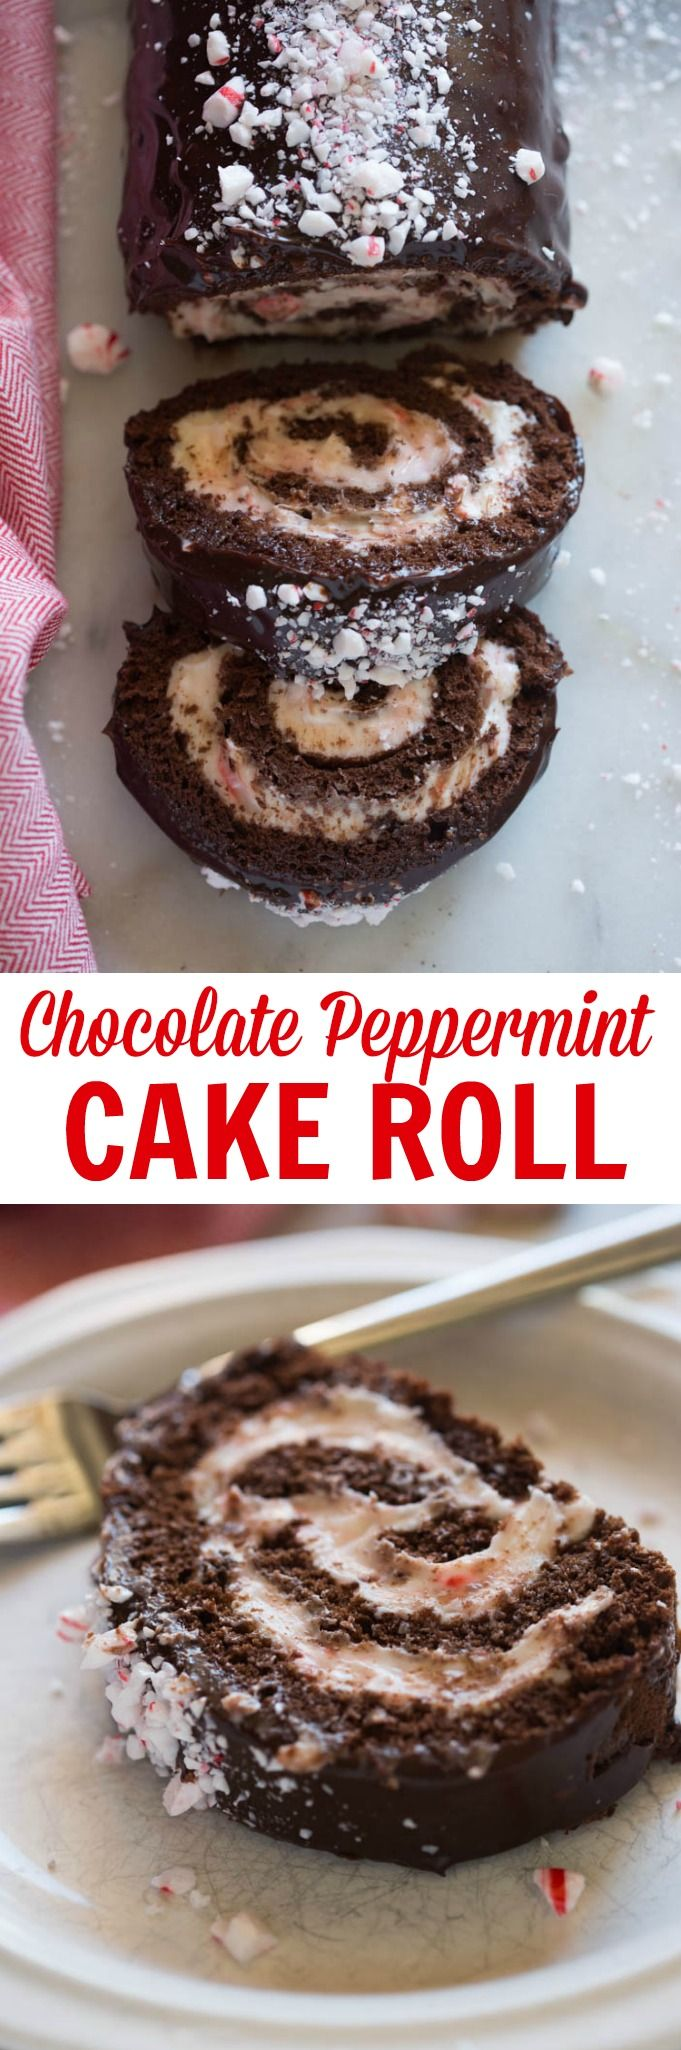 Chocolate Peppermint Cake Roll with a cream cheese peppermint filling and chocolate ganache on top. A beautiful, festive dessert for the holidays! via @betrfromscratch